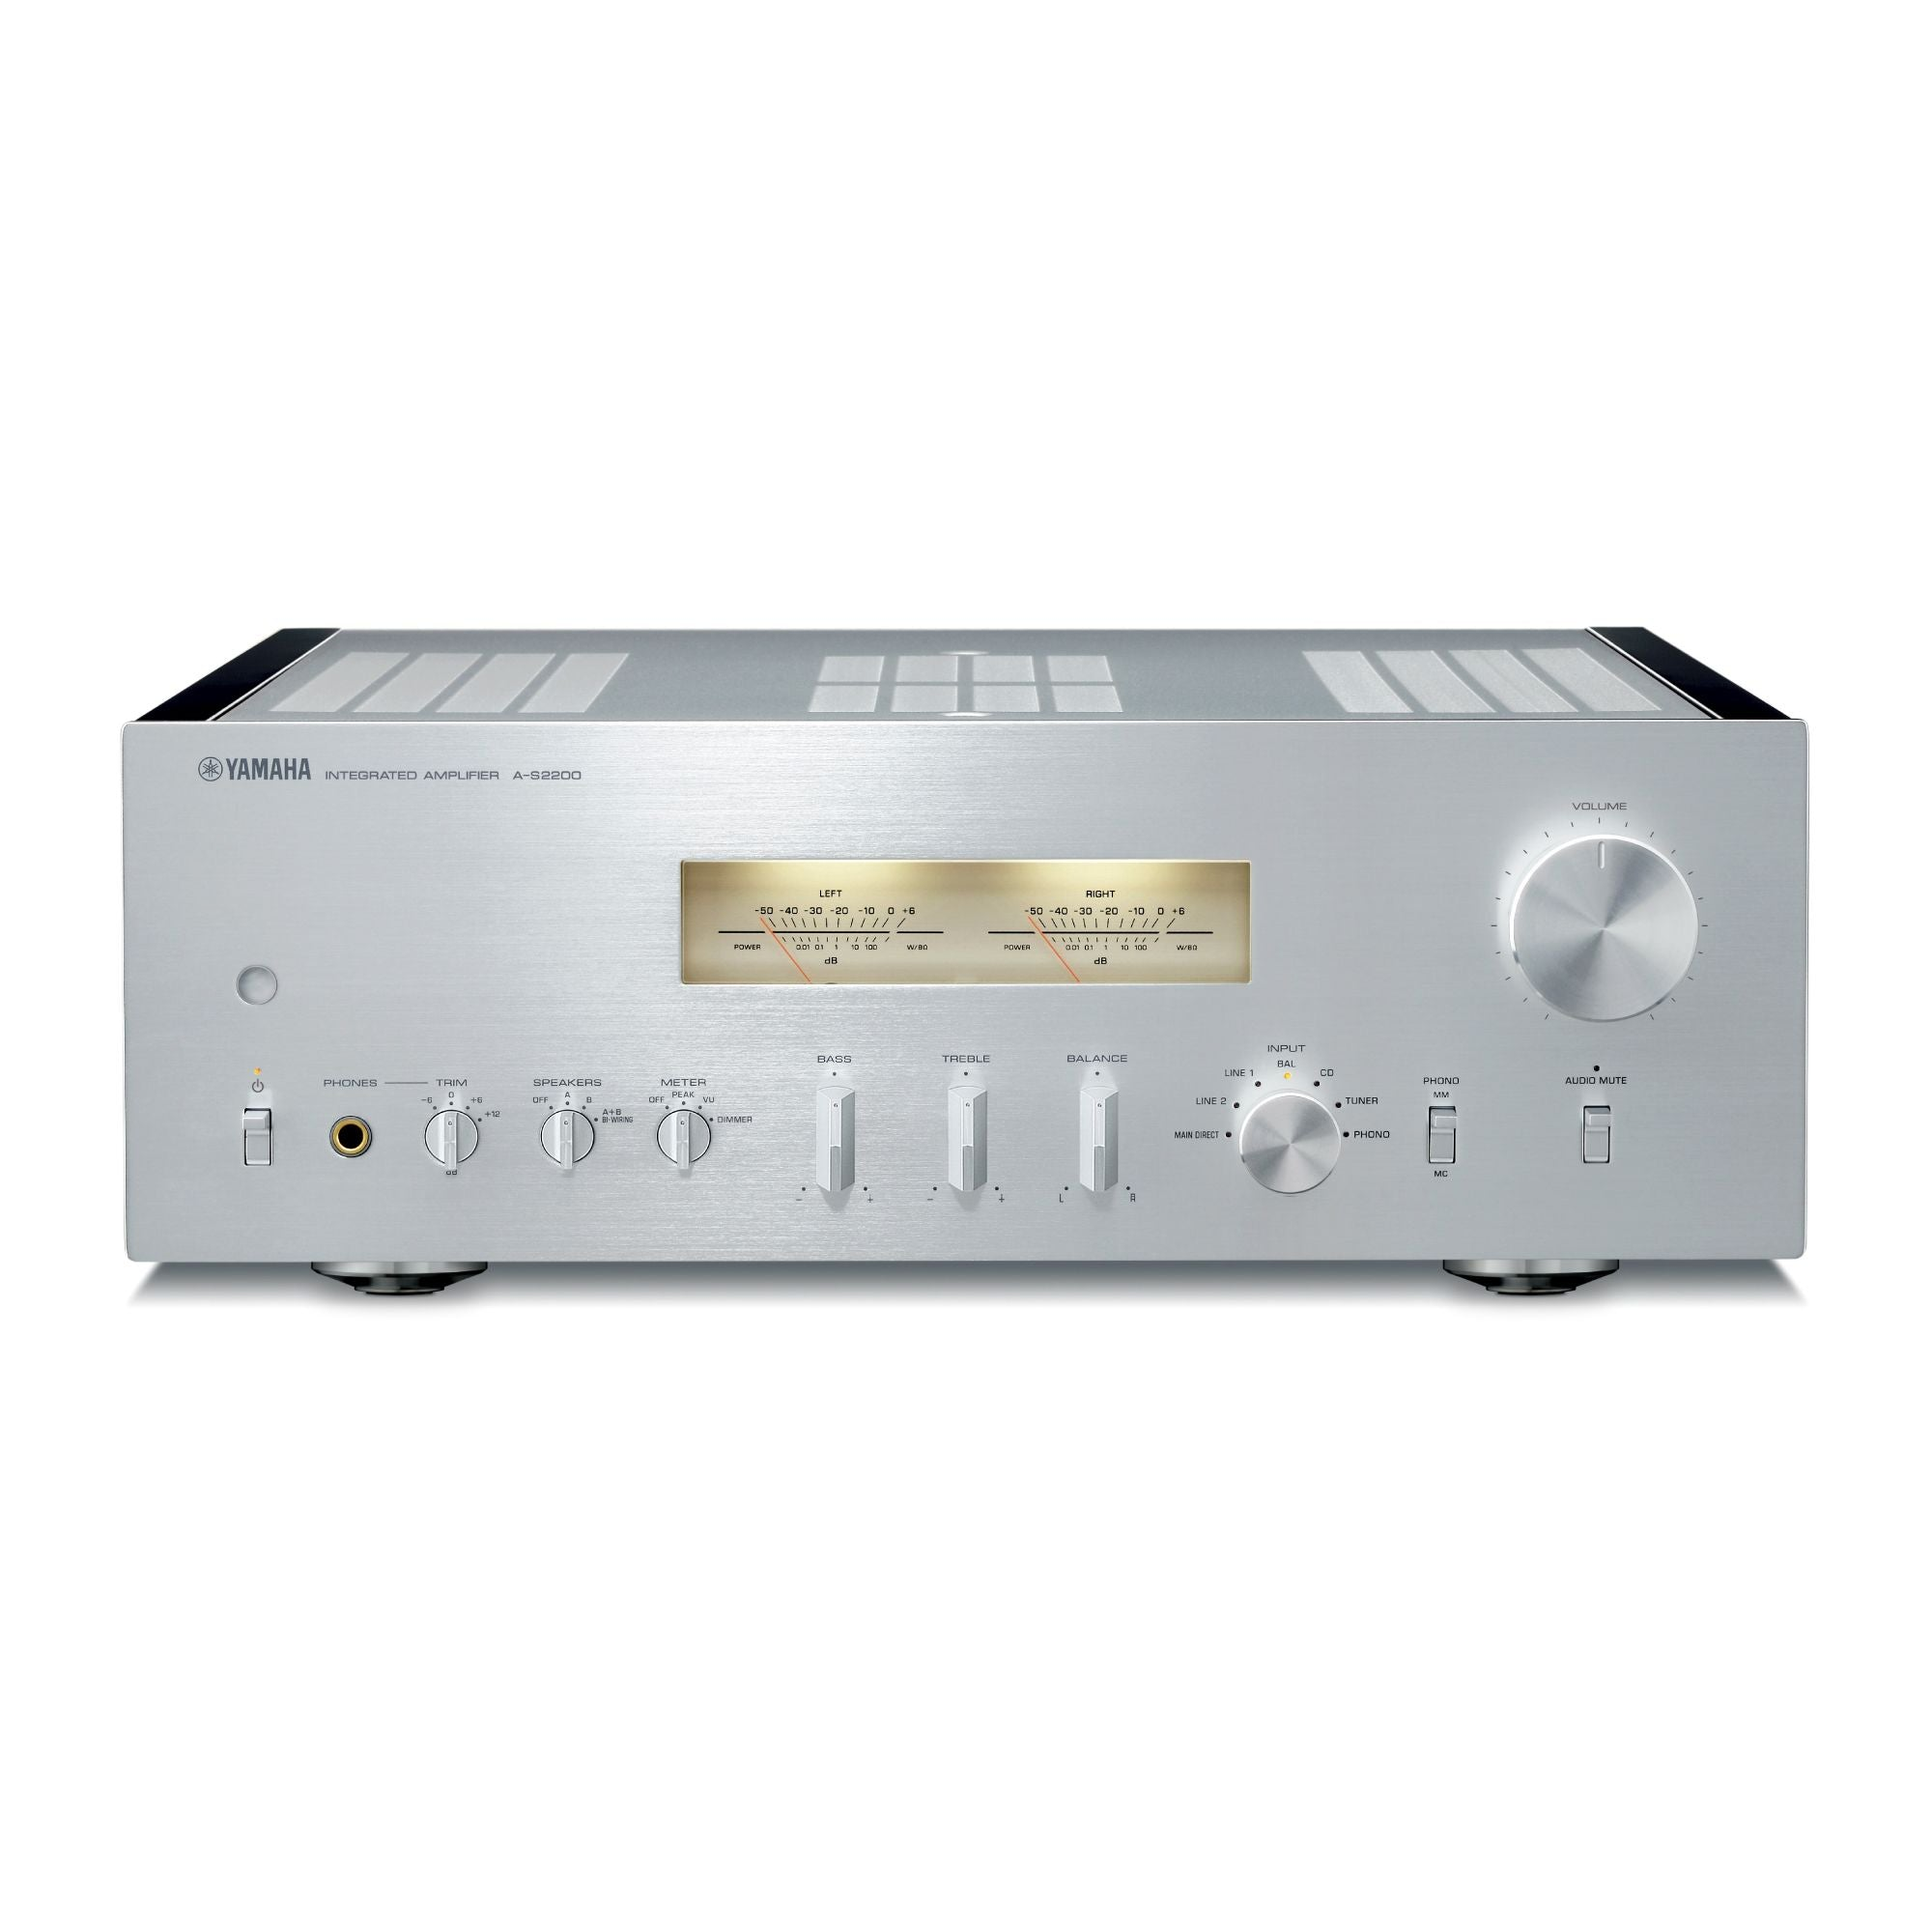 YAMAHA A-S2200 HIGH-END INTERGRATED STEREO AMPLIFIER